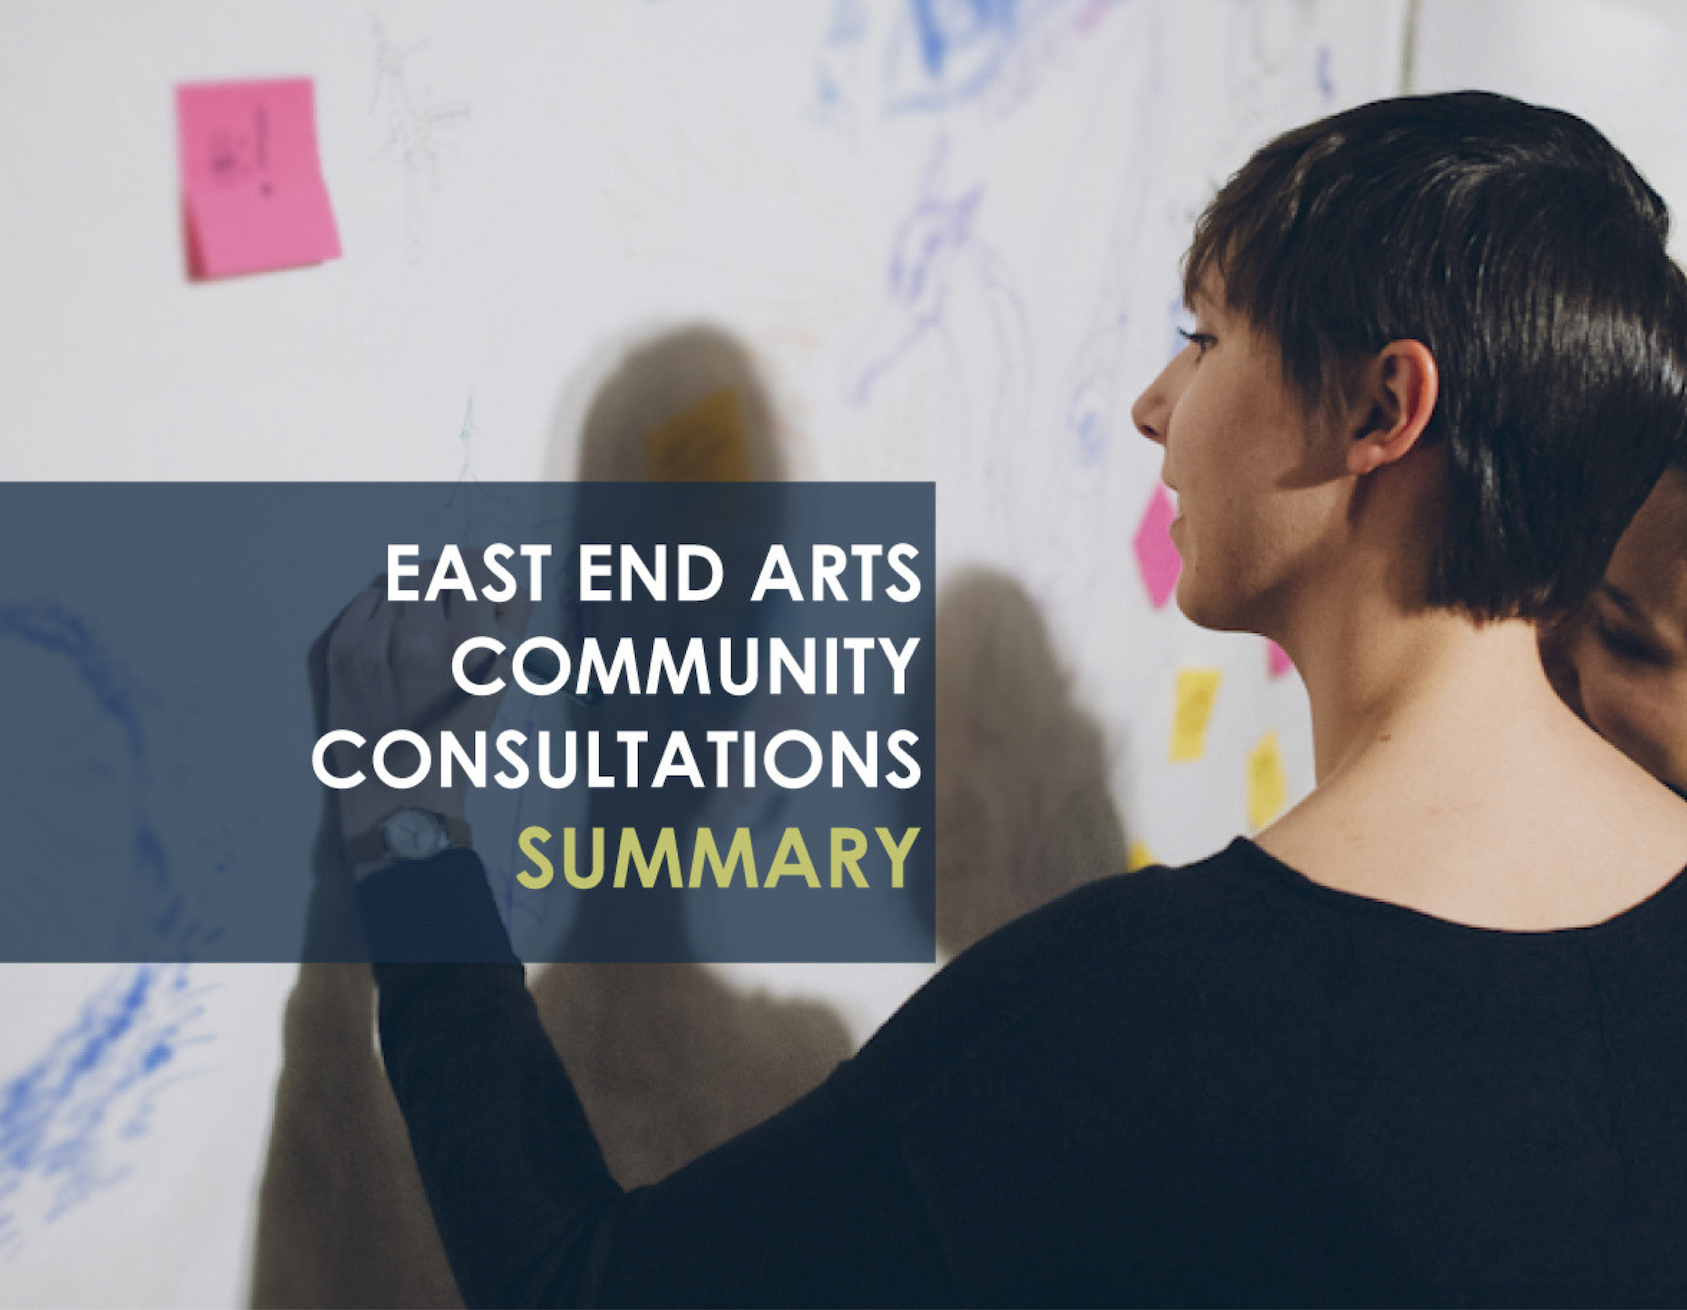 Community Consultations Summary